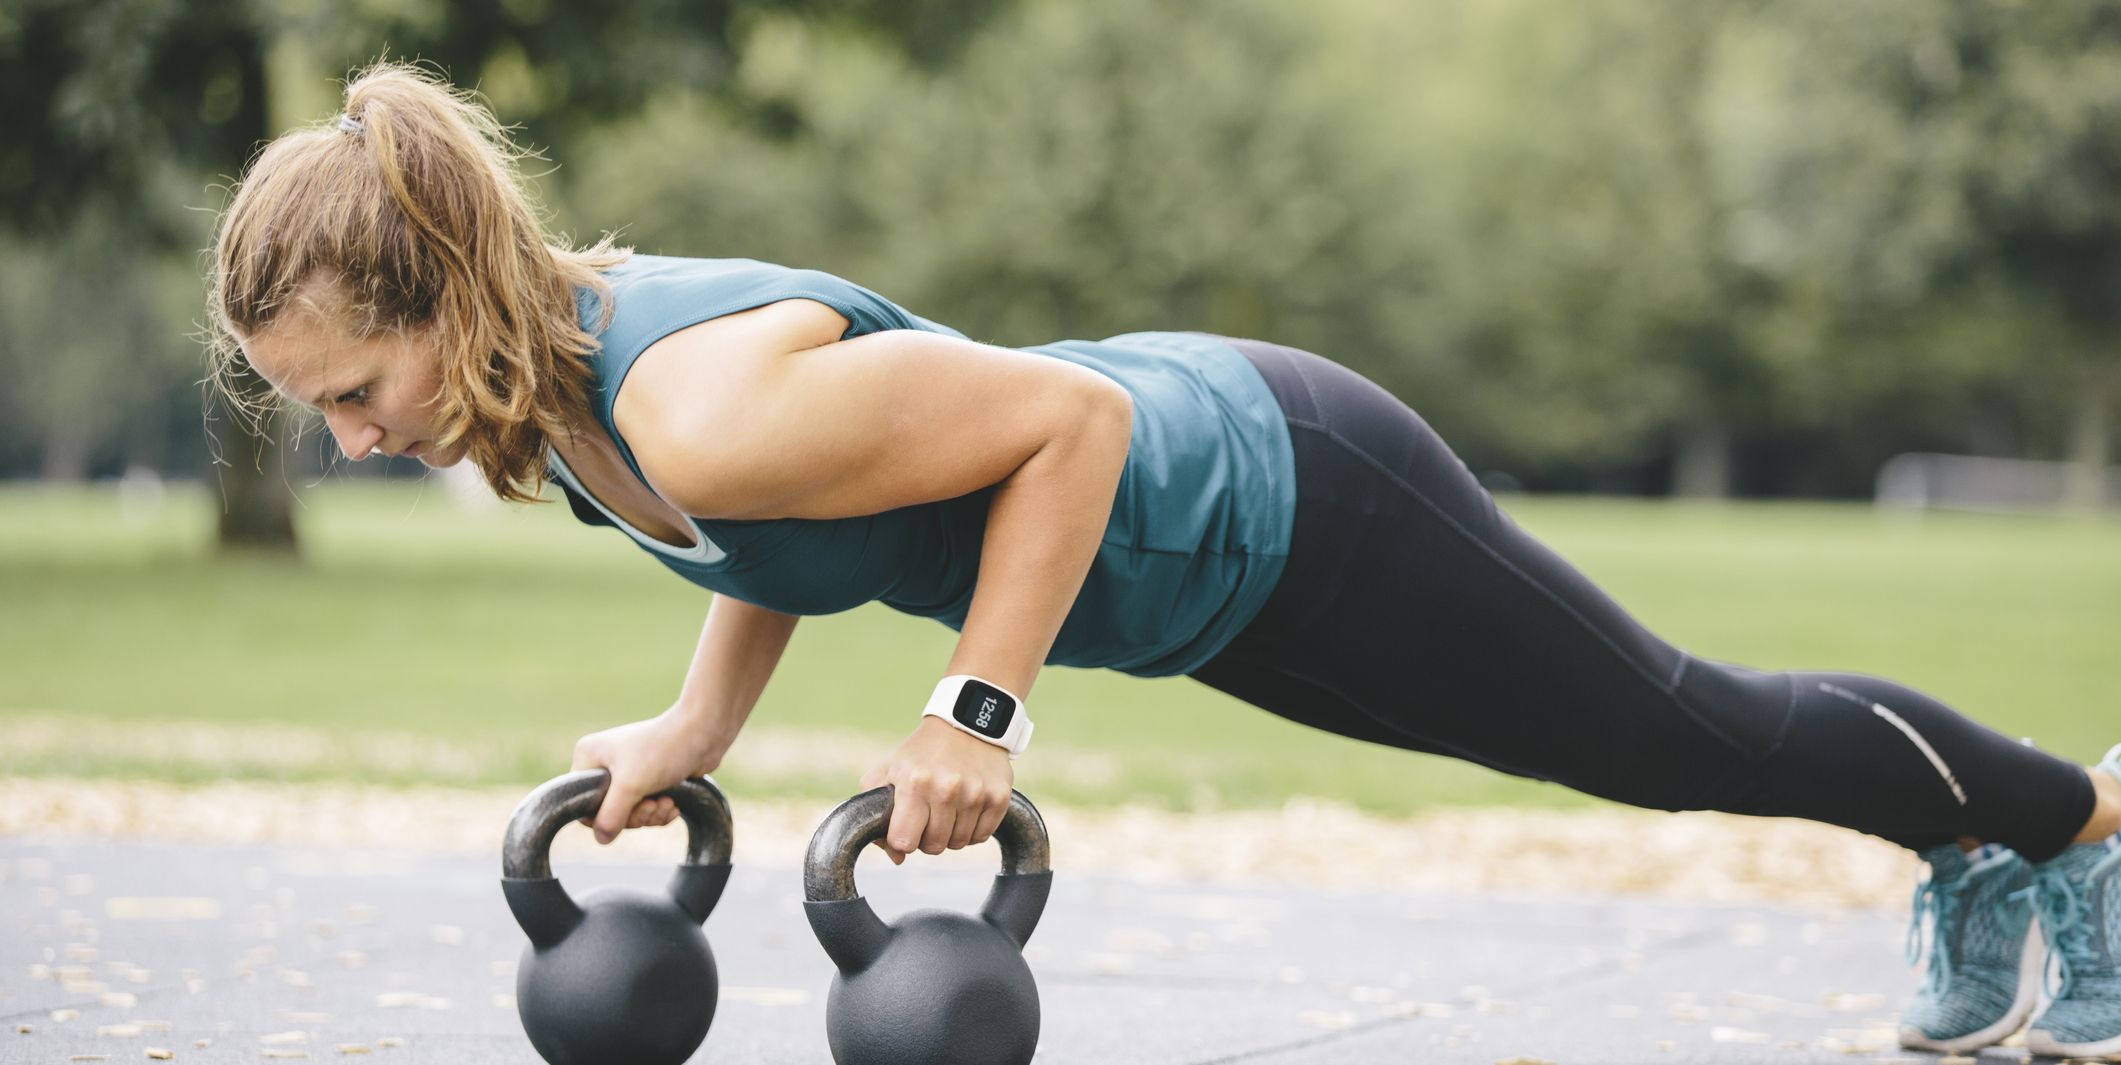 Searching for a Full Body Kettlebell Workout? Build Strength with this 30 Min Circuit